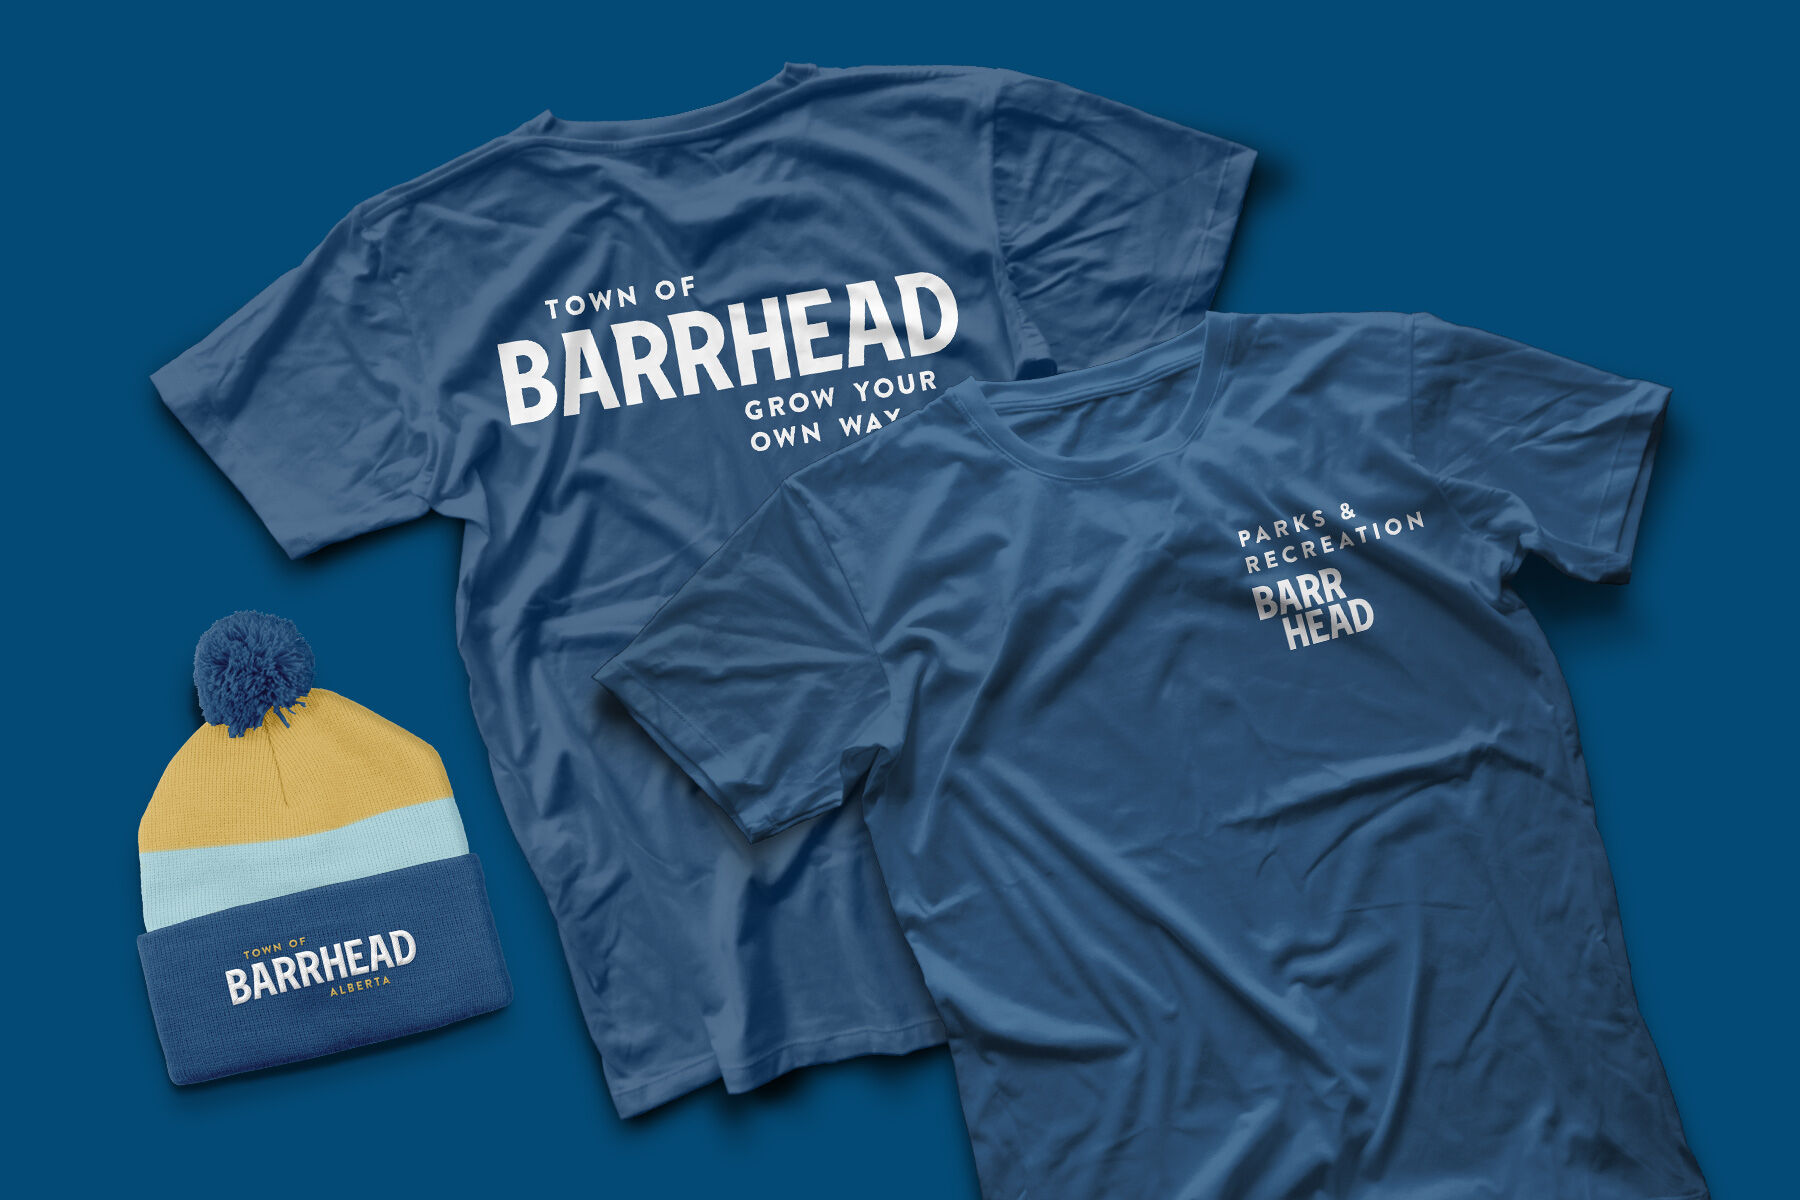 T-shirt and toque for Barrhead Staff